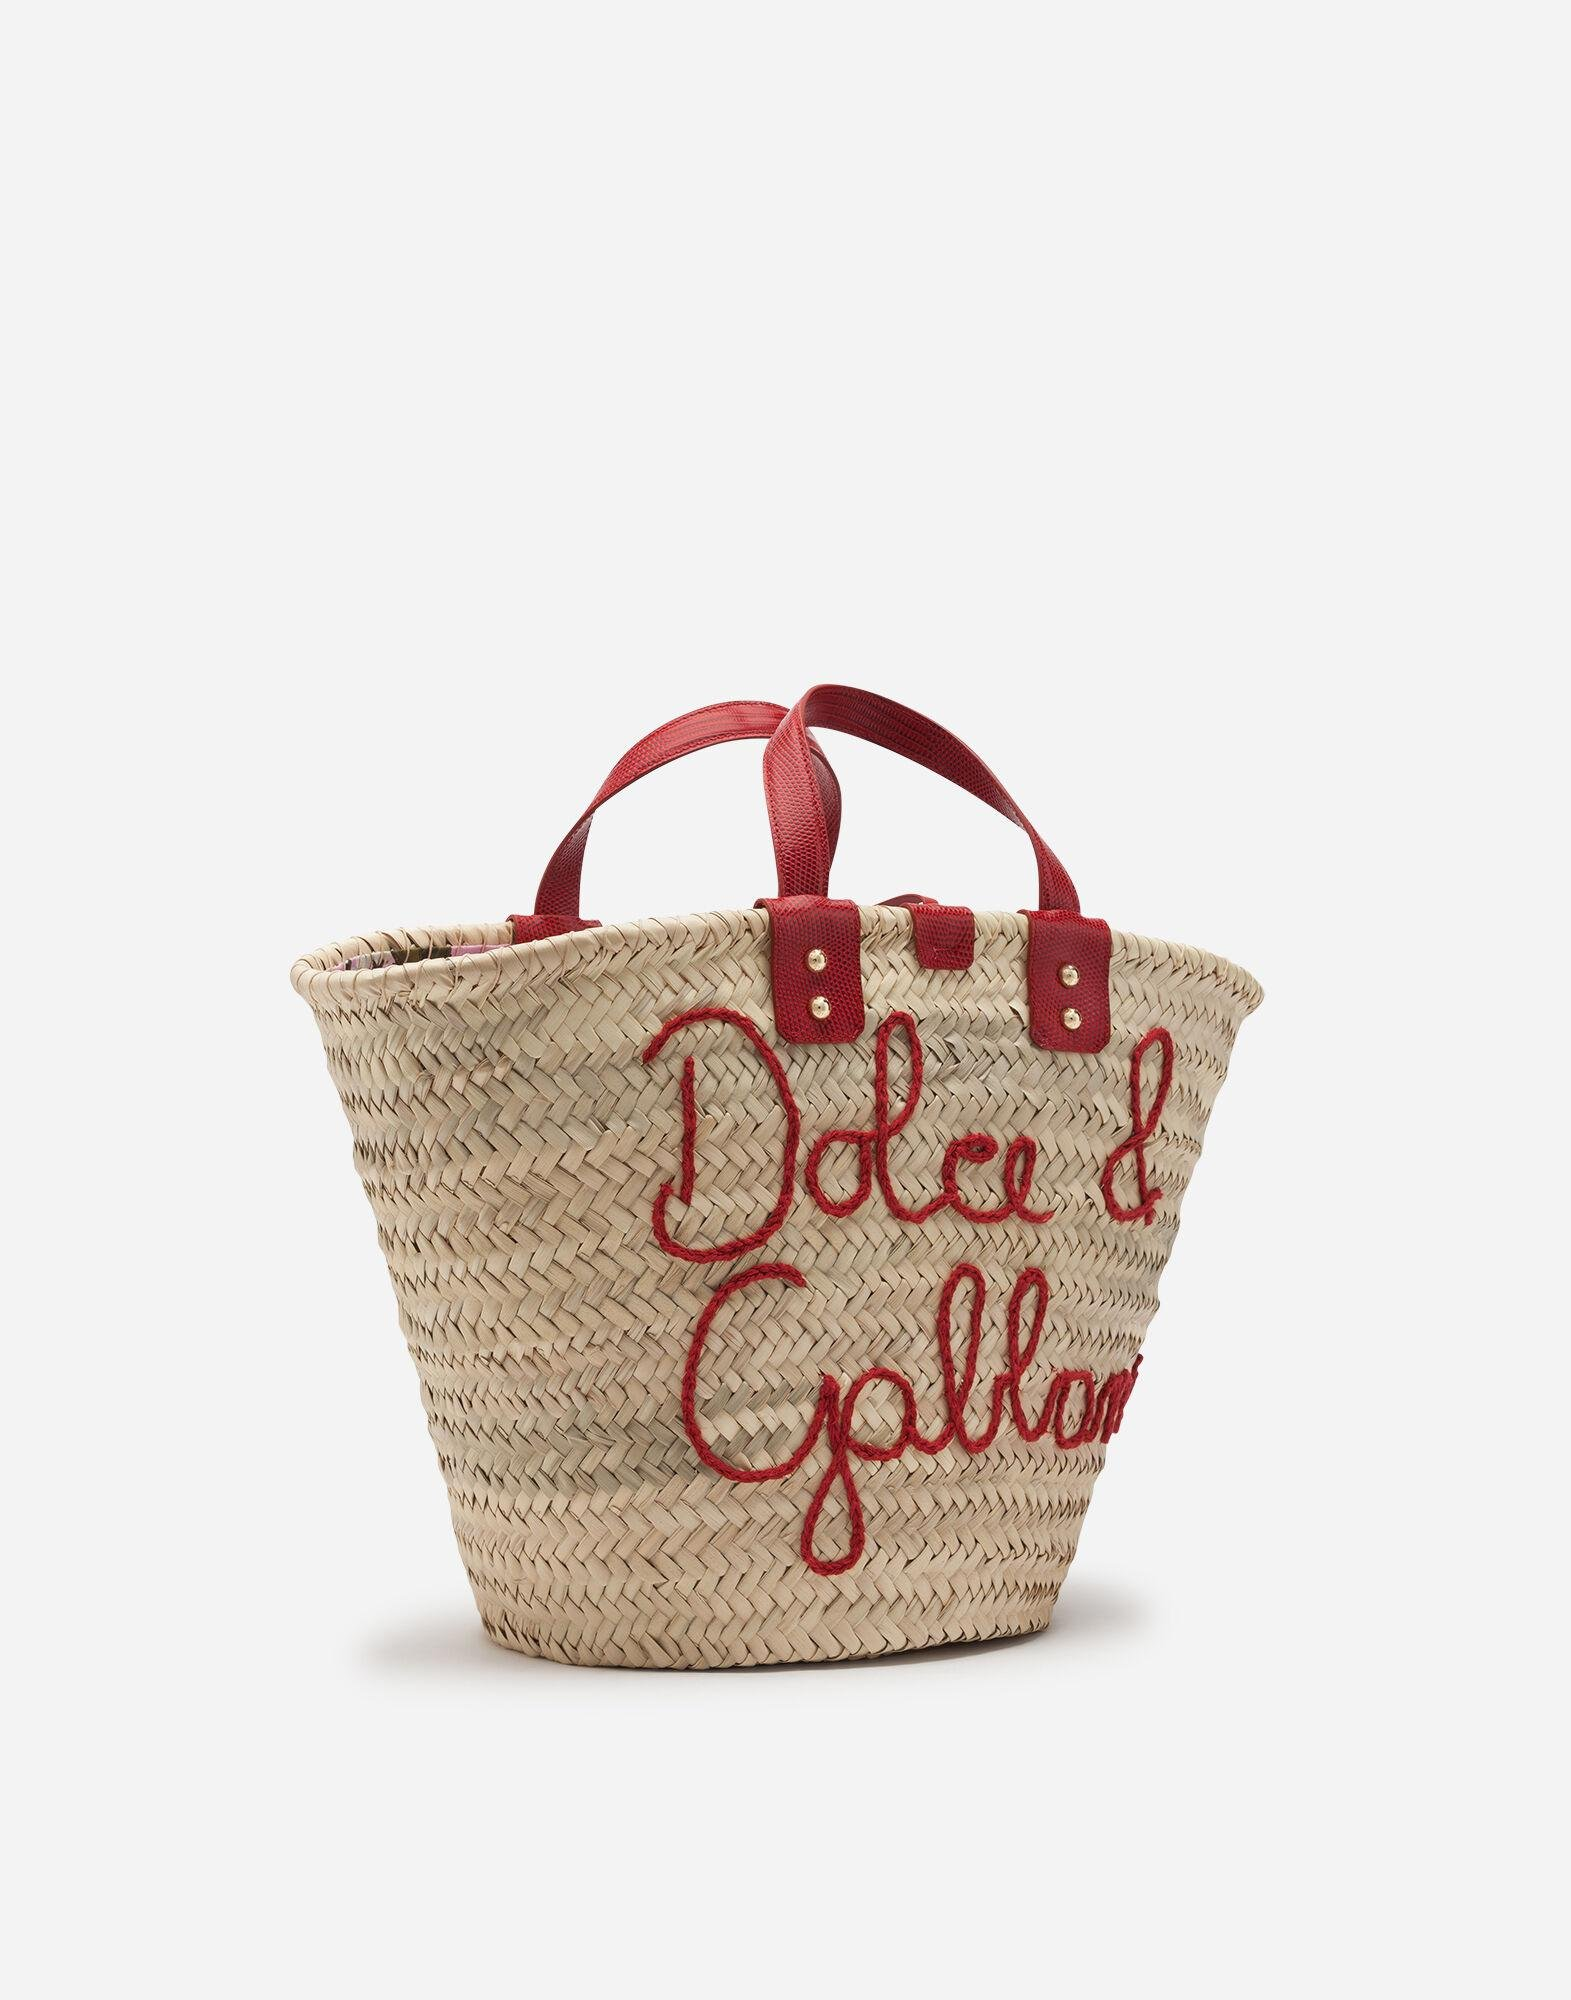 Kendra coffa bag in straw with thread embroidery 1